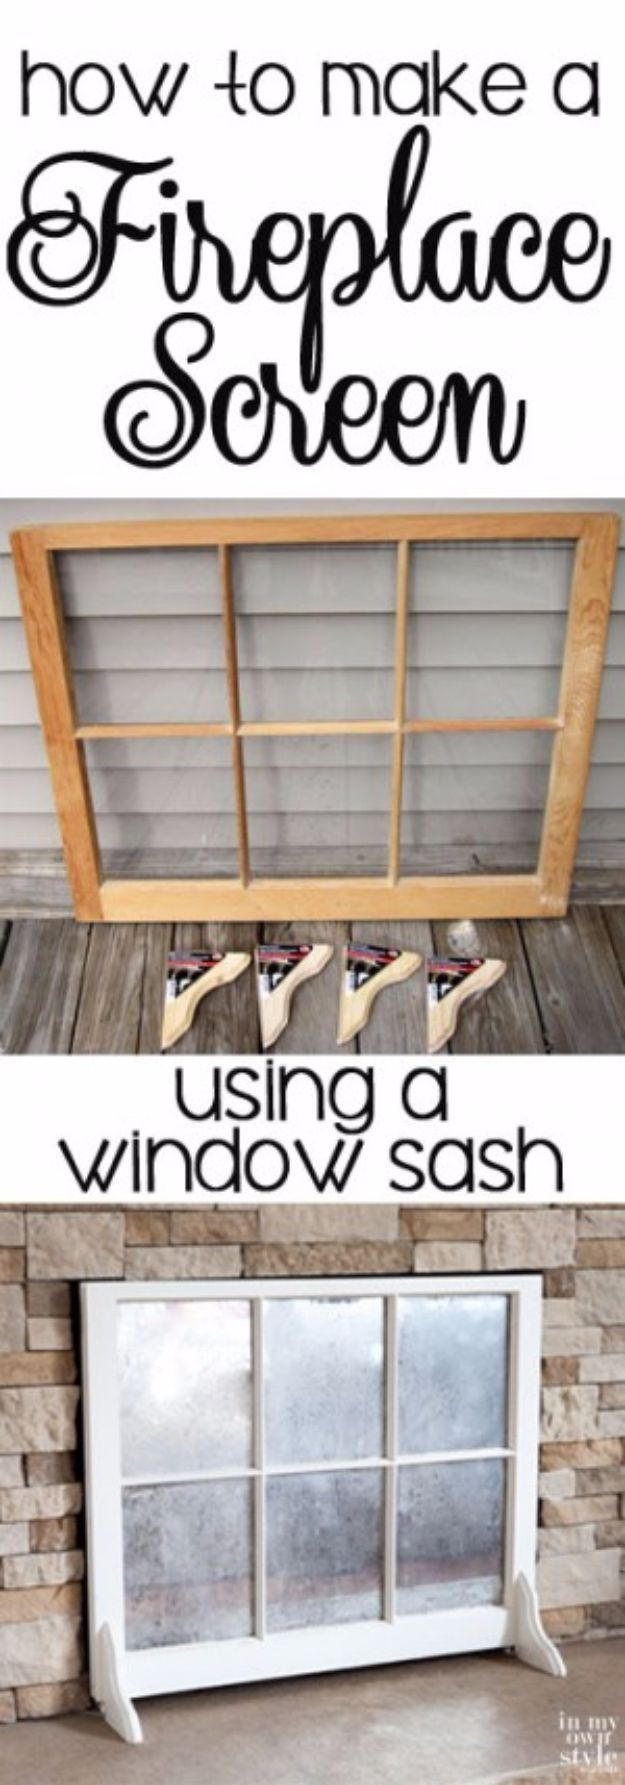 Ideas For Old Windows Best 20 Old Window Decor Ideas On Pinterest Old Window Ideas